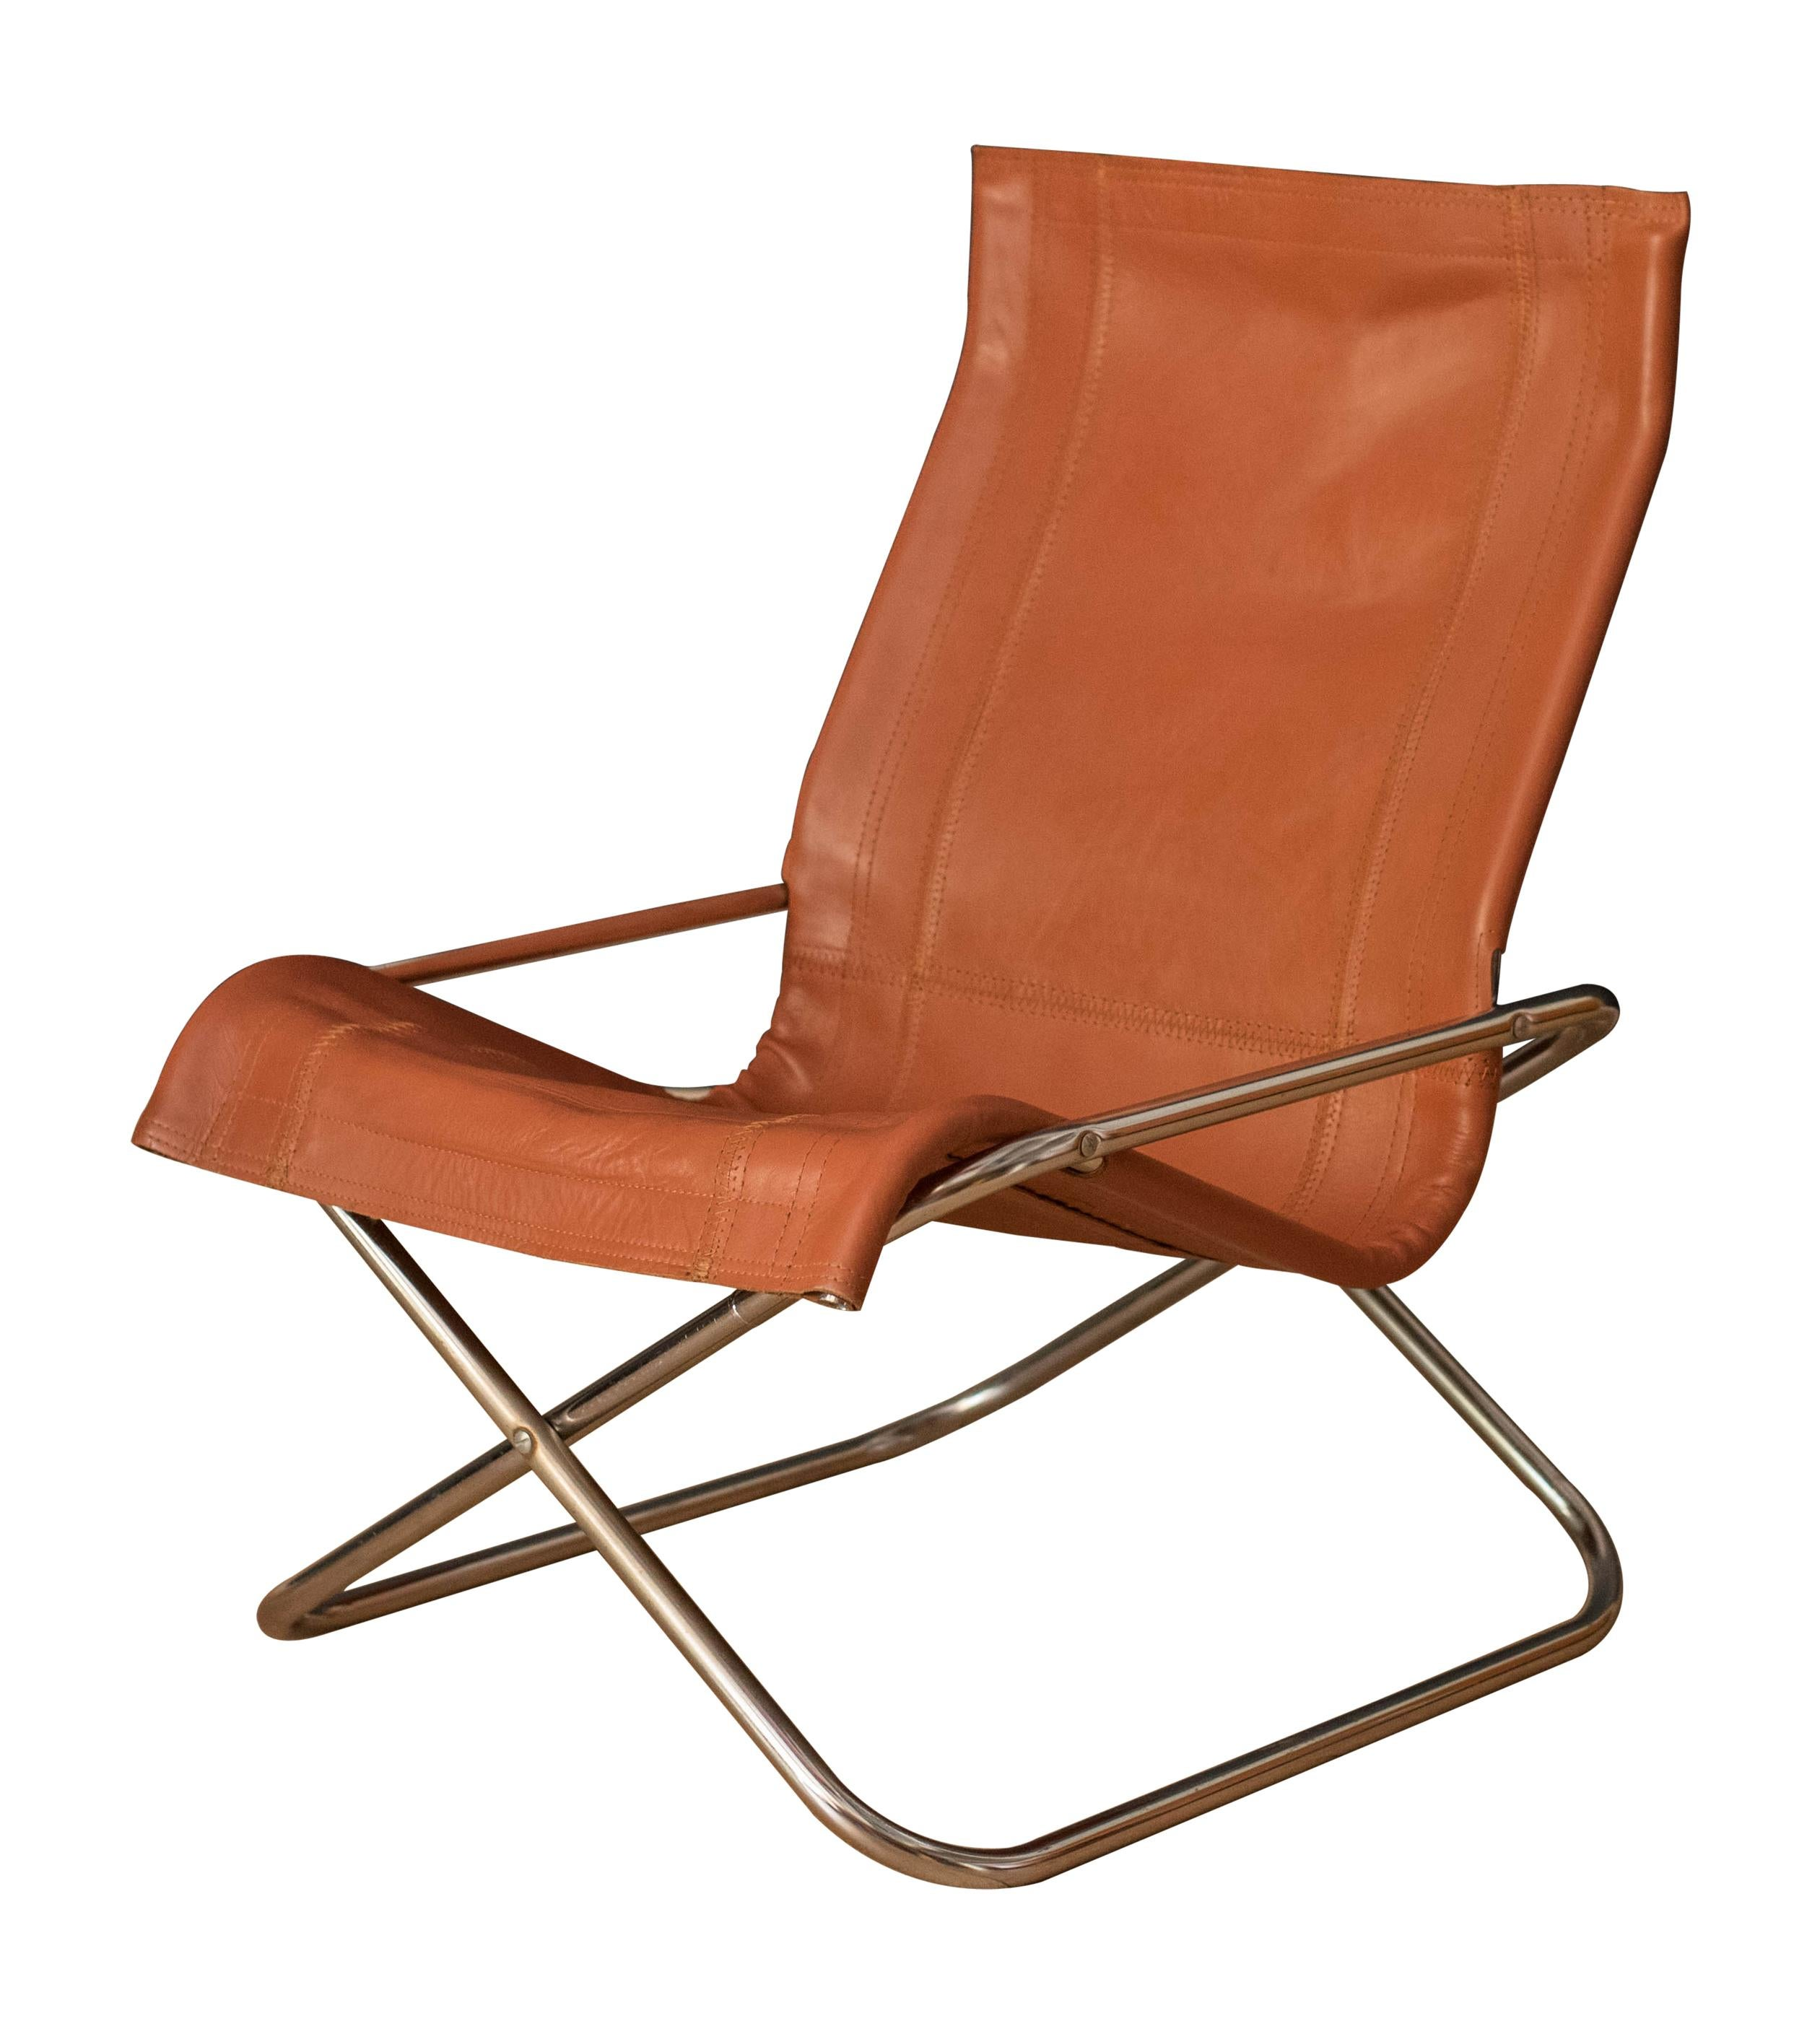 Vintage Takeshi Nii Leather and Chrome Sling Chair